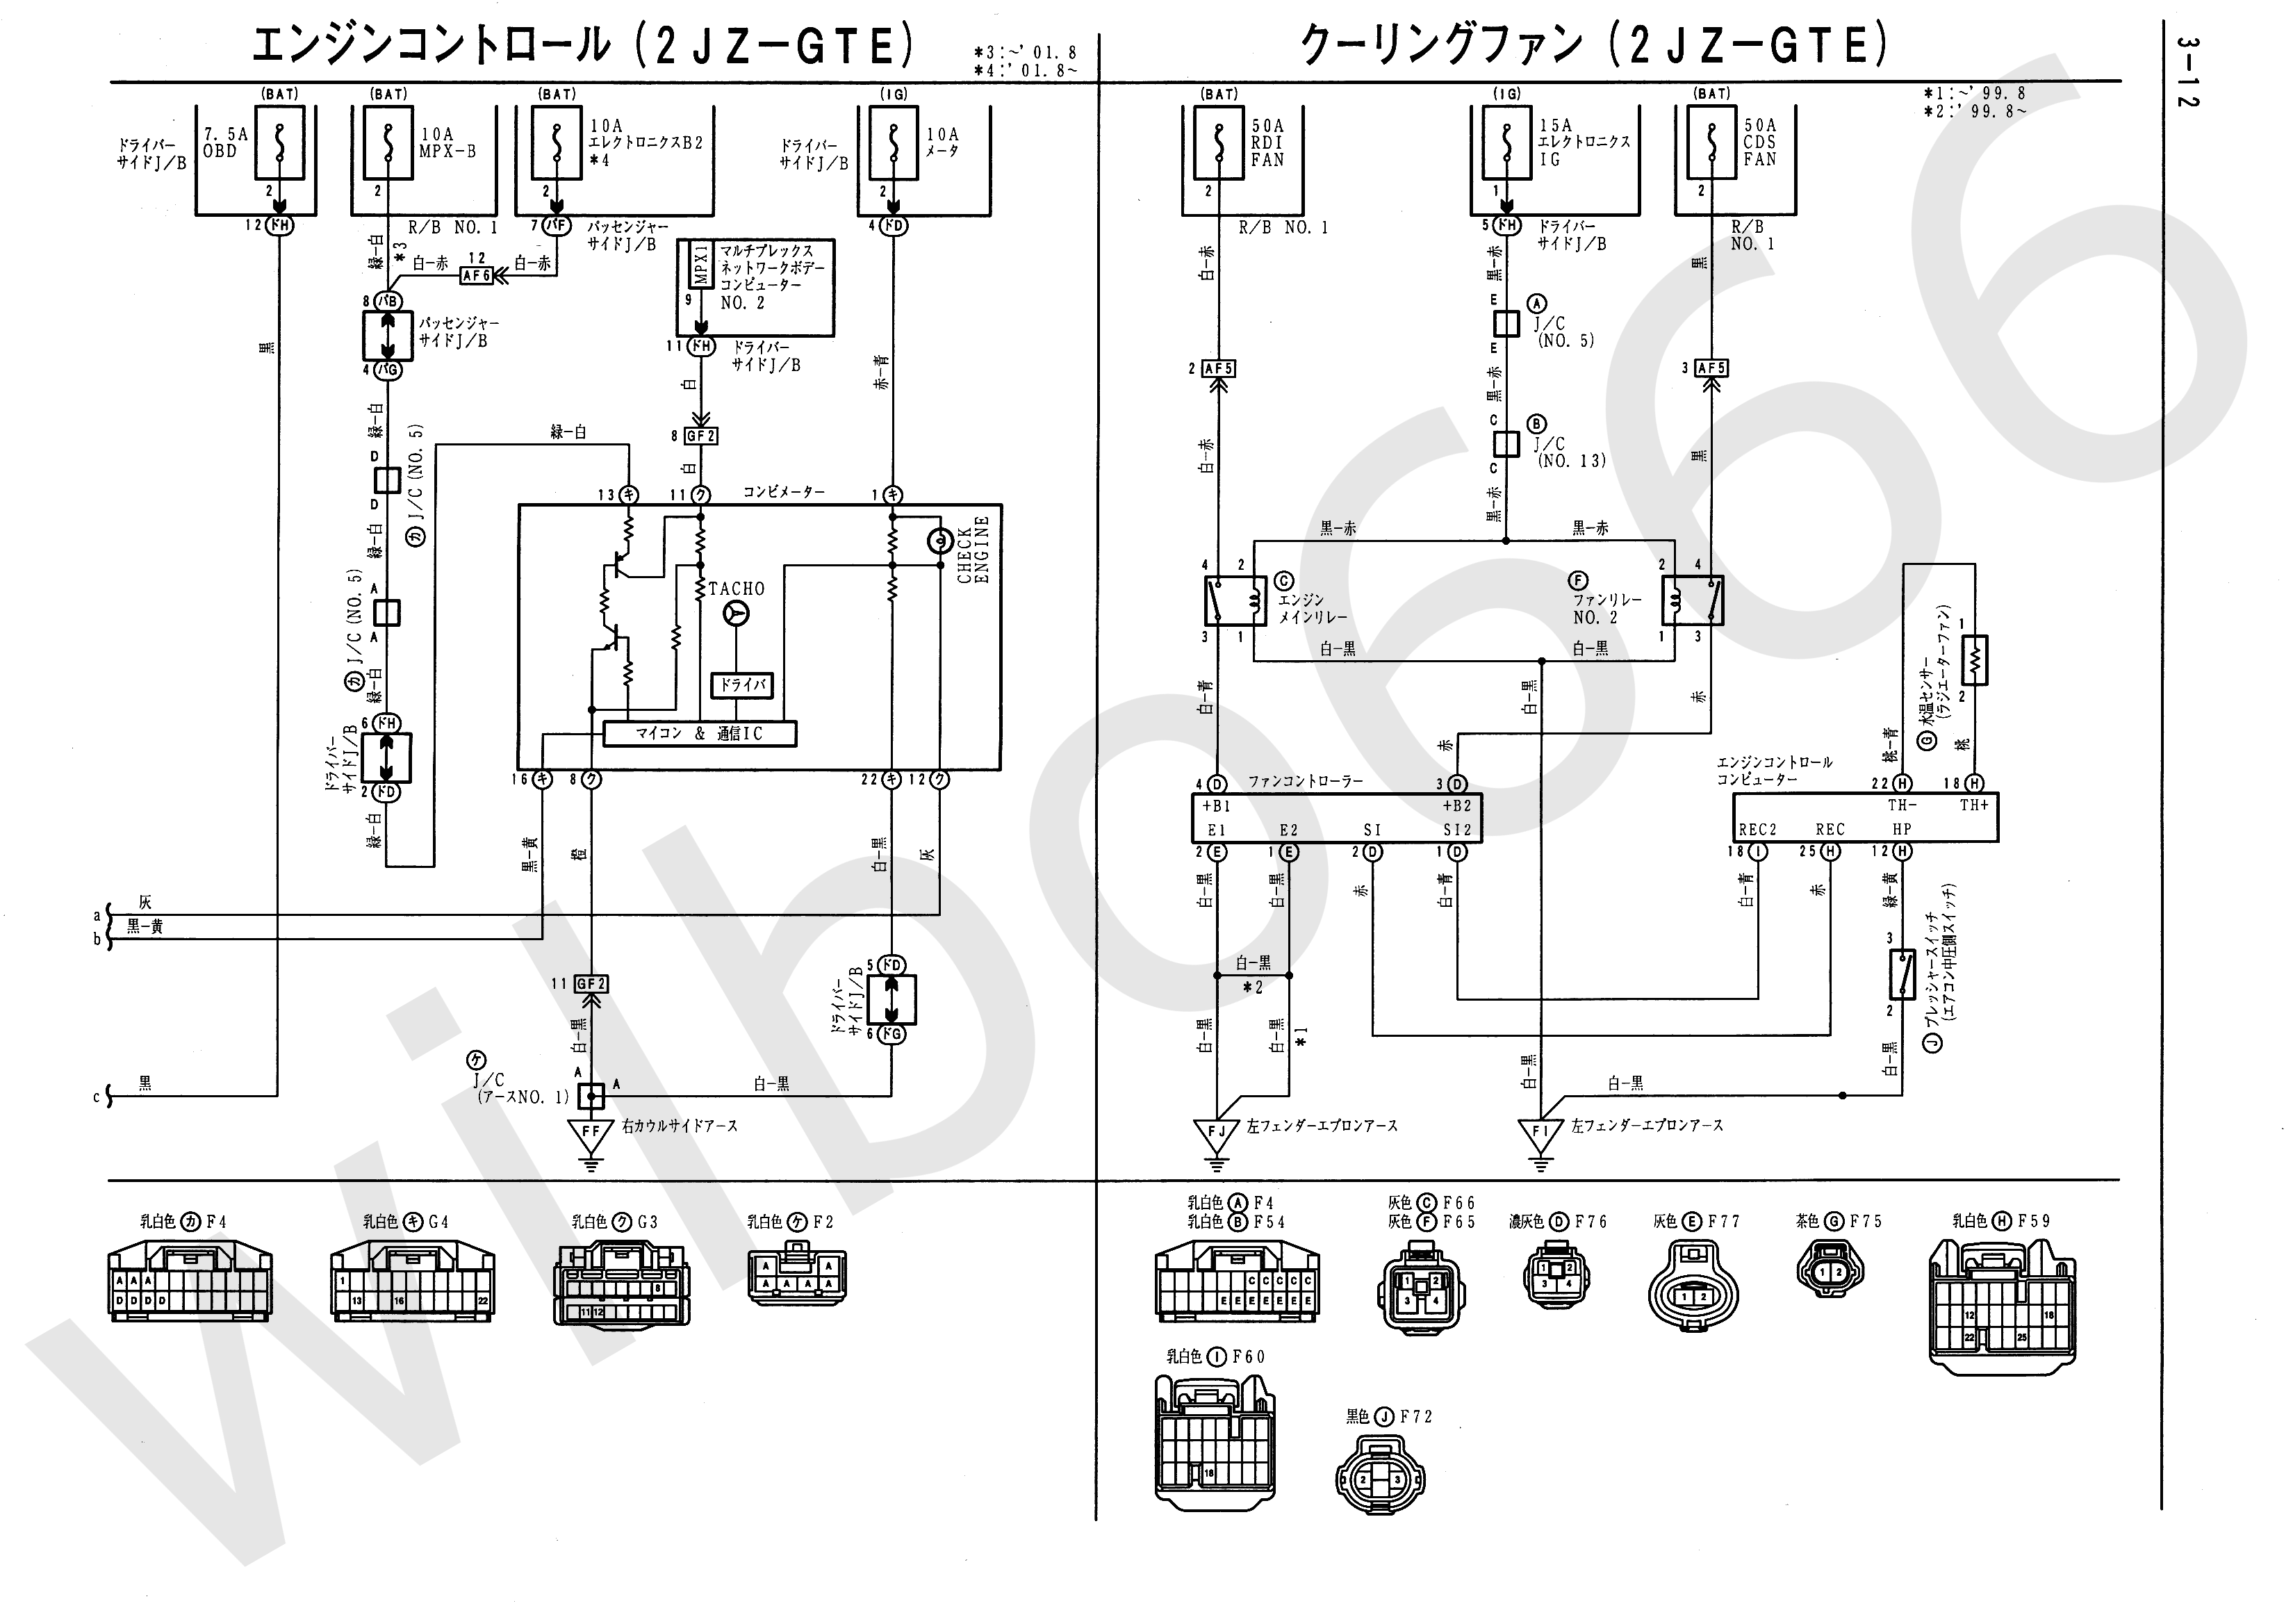 JZS161 Electrical Wiring Diagram 6748505 3 12 wilbo666 2jz gte vvti jzs161 aristo engine wiring 2jz wiring diagram at gsmportal.co